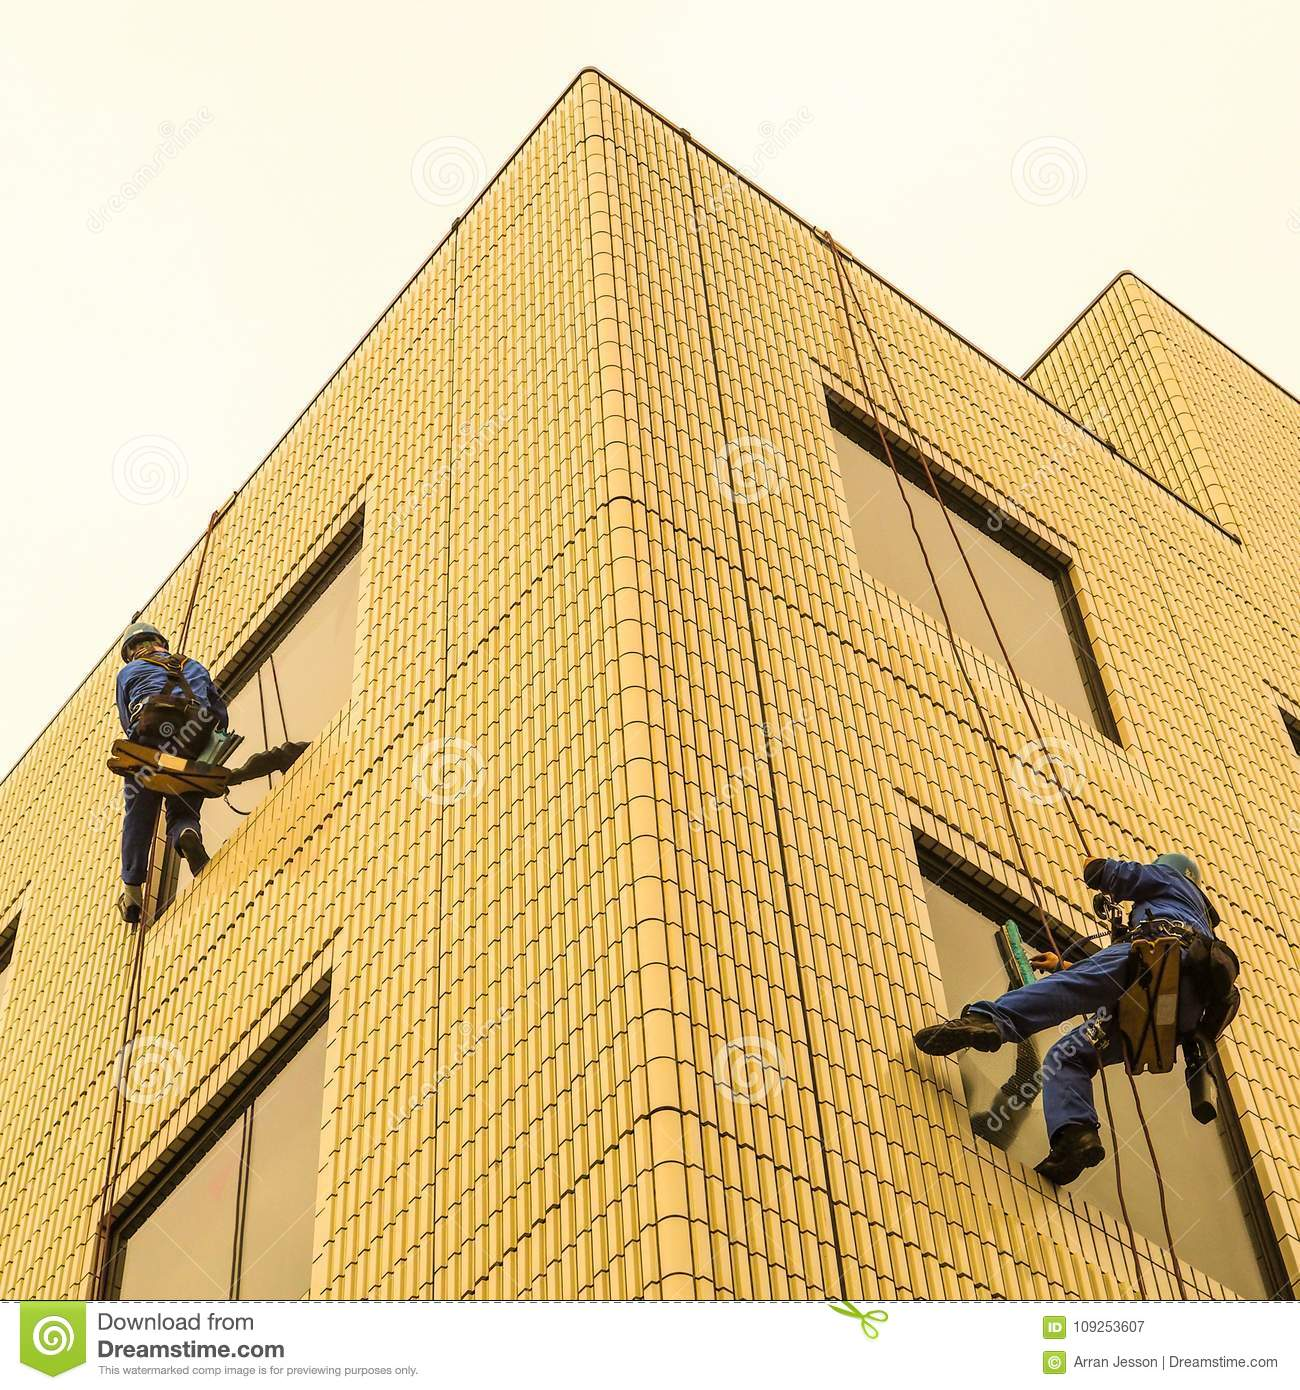 Two window washers at work.